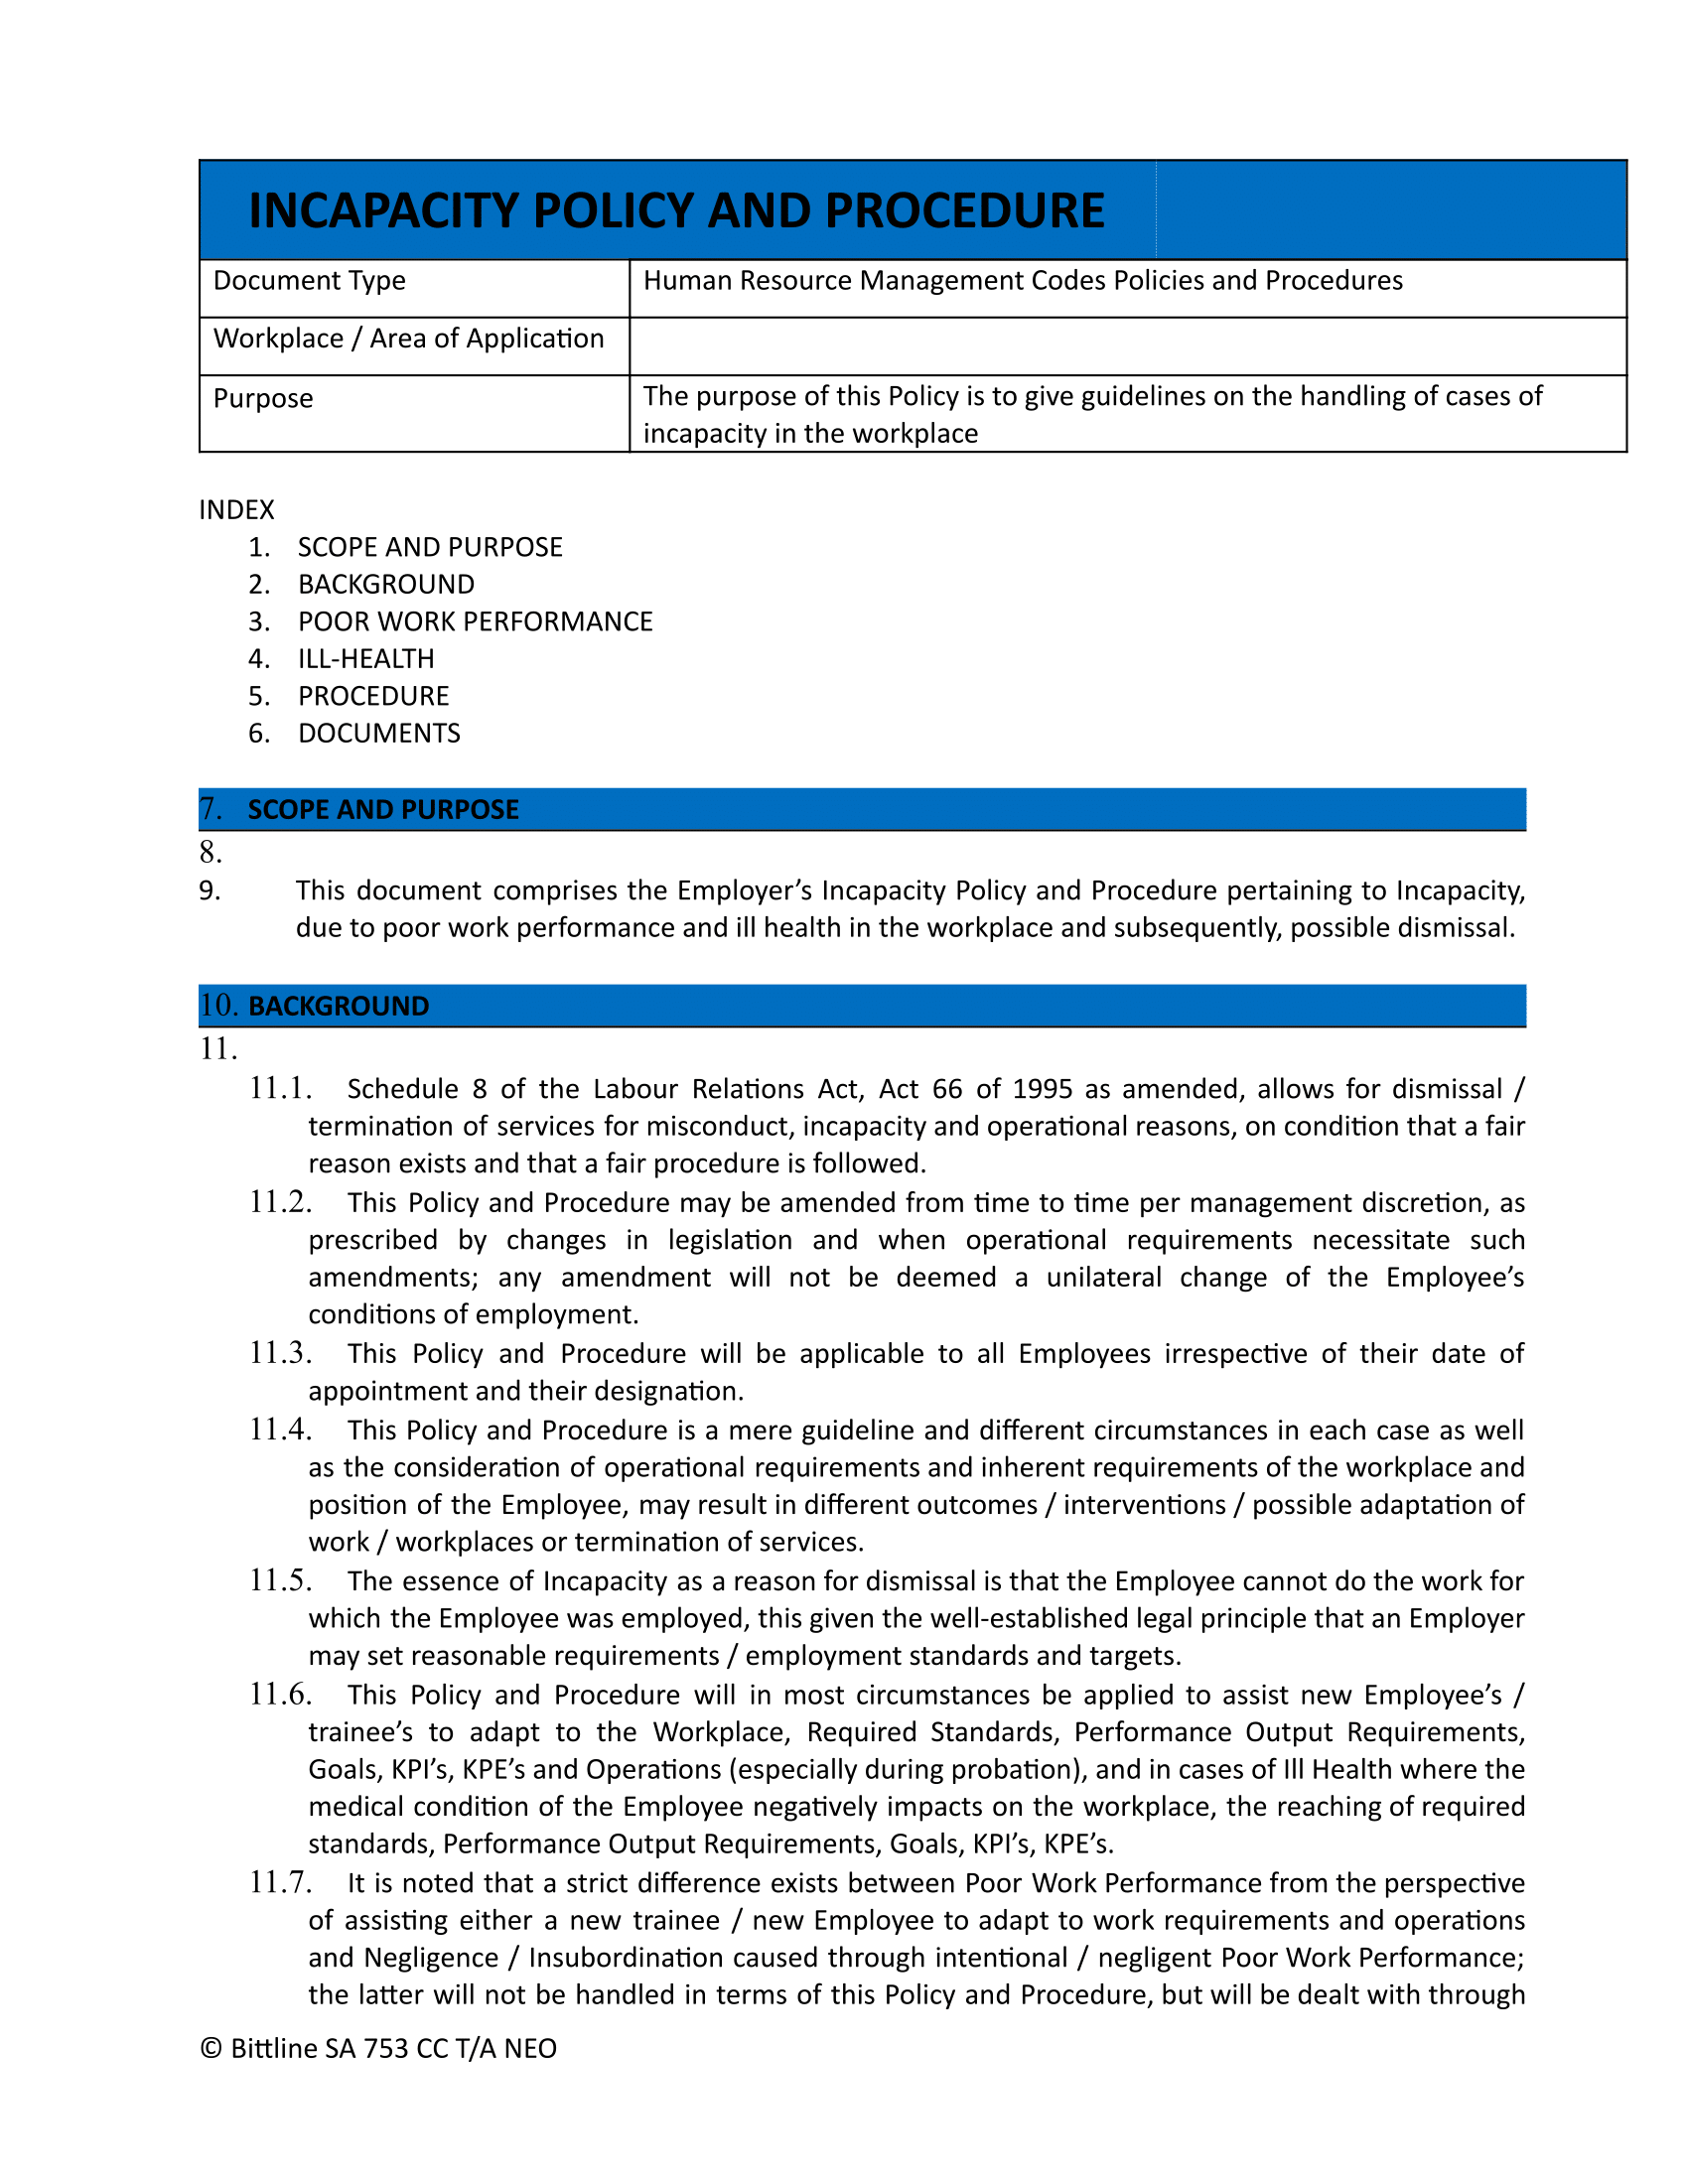 CP-002-INCAPACITY-POLICY-AND-PROCEDURE-2018 - Google Docs-1